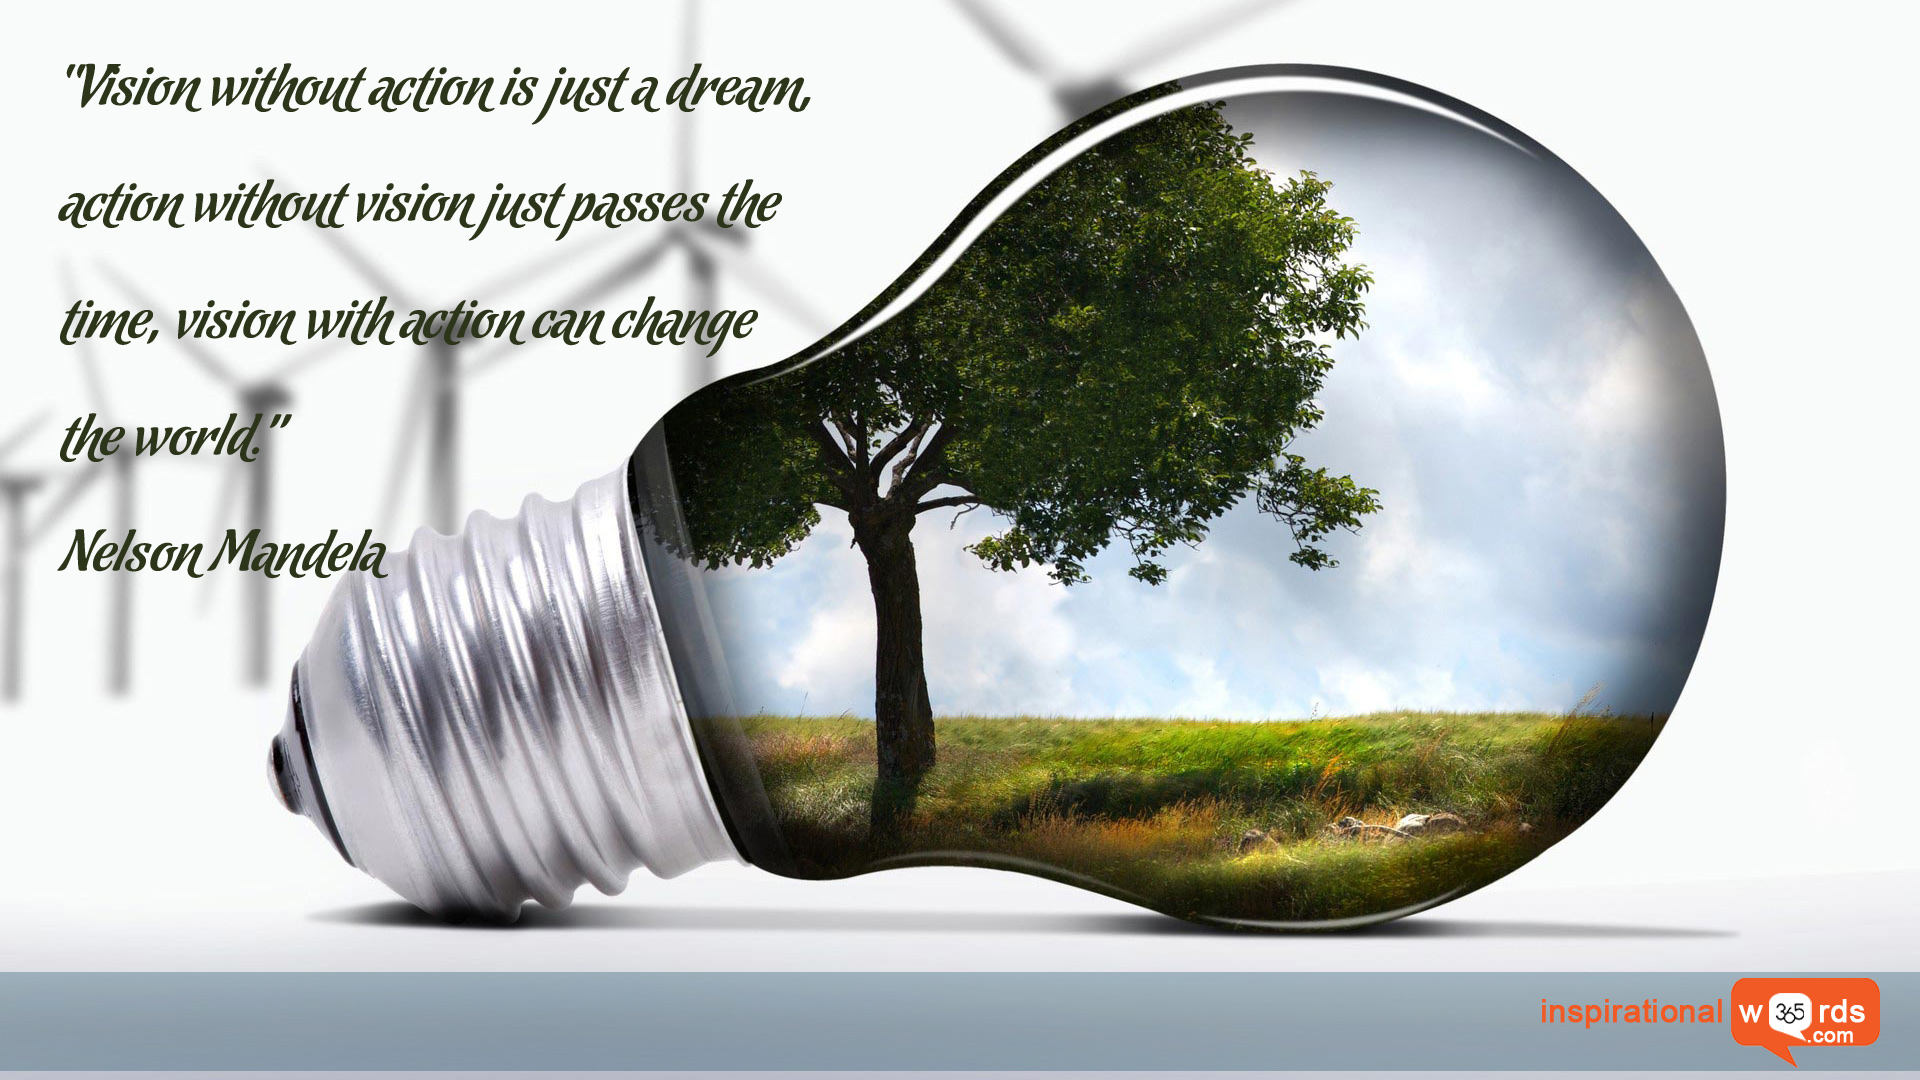 Inspirational Wallpaper Quote by Nelson Mandela